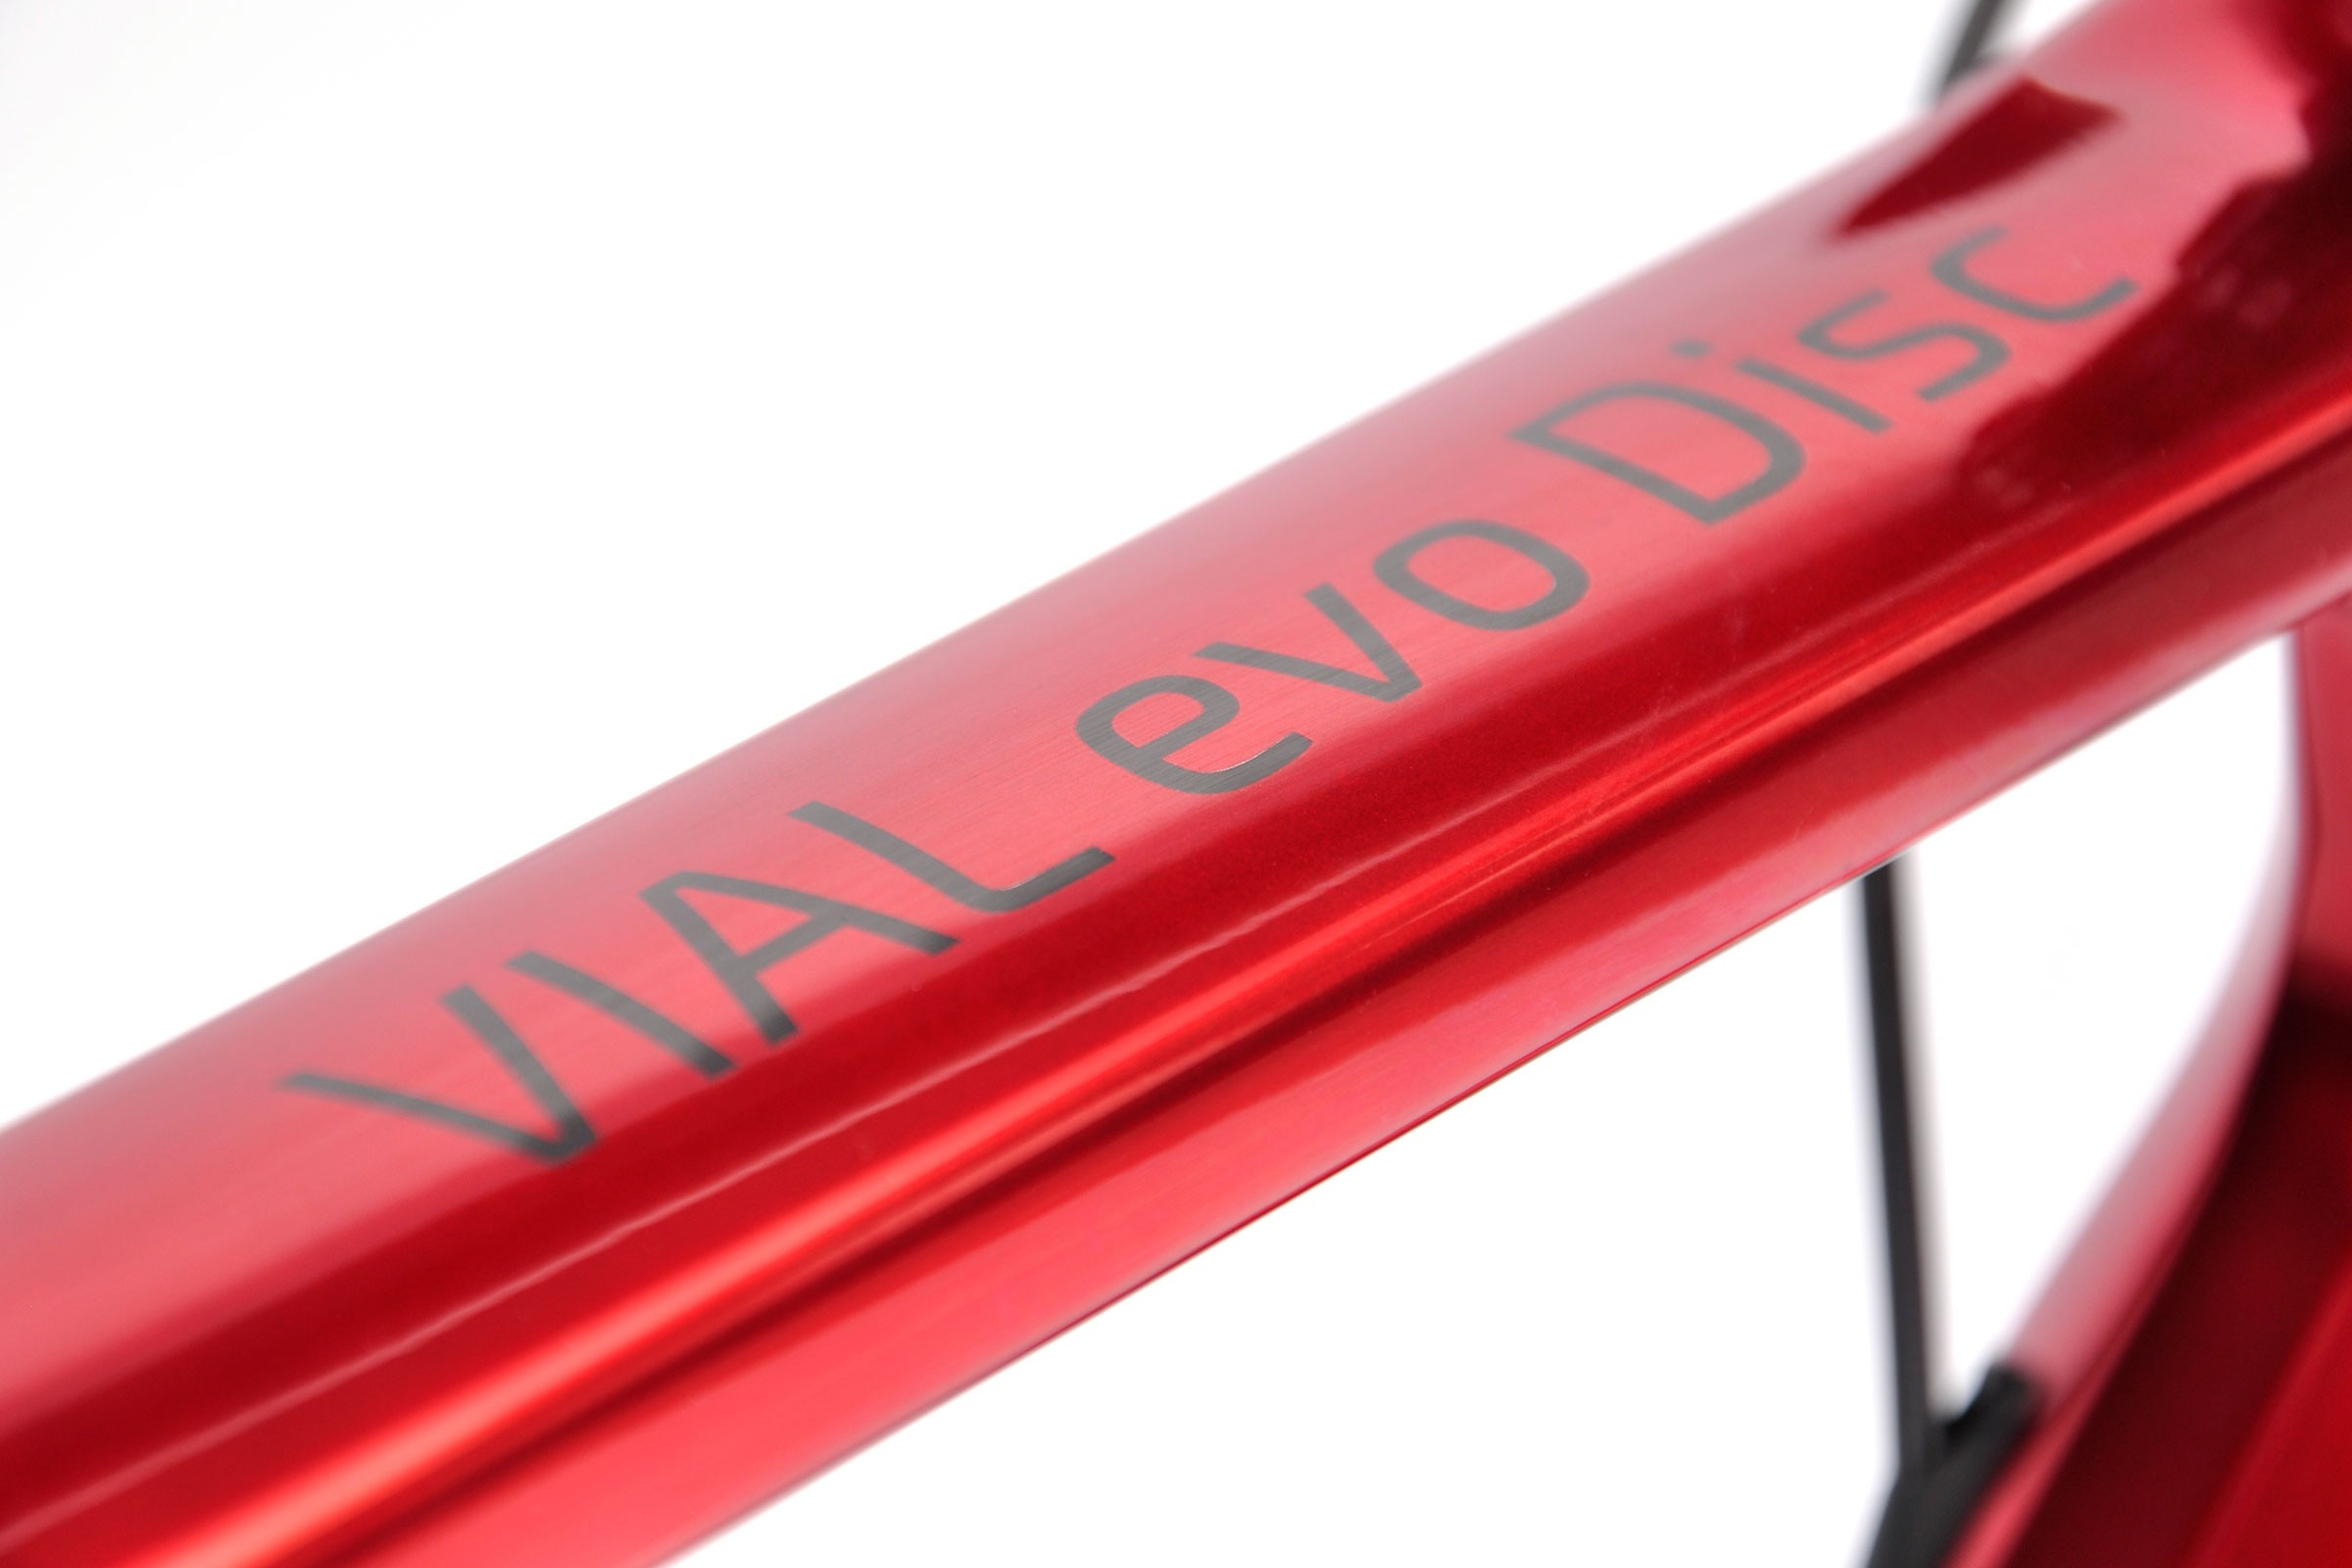 Top tube decal and paint